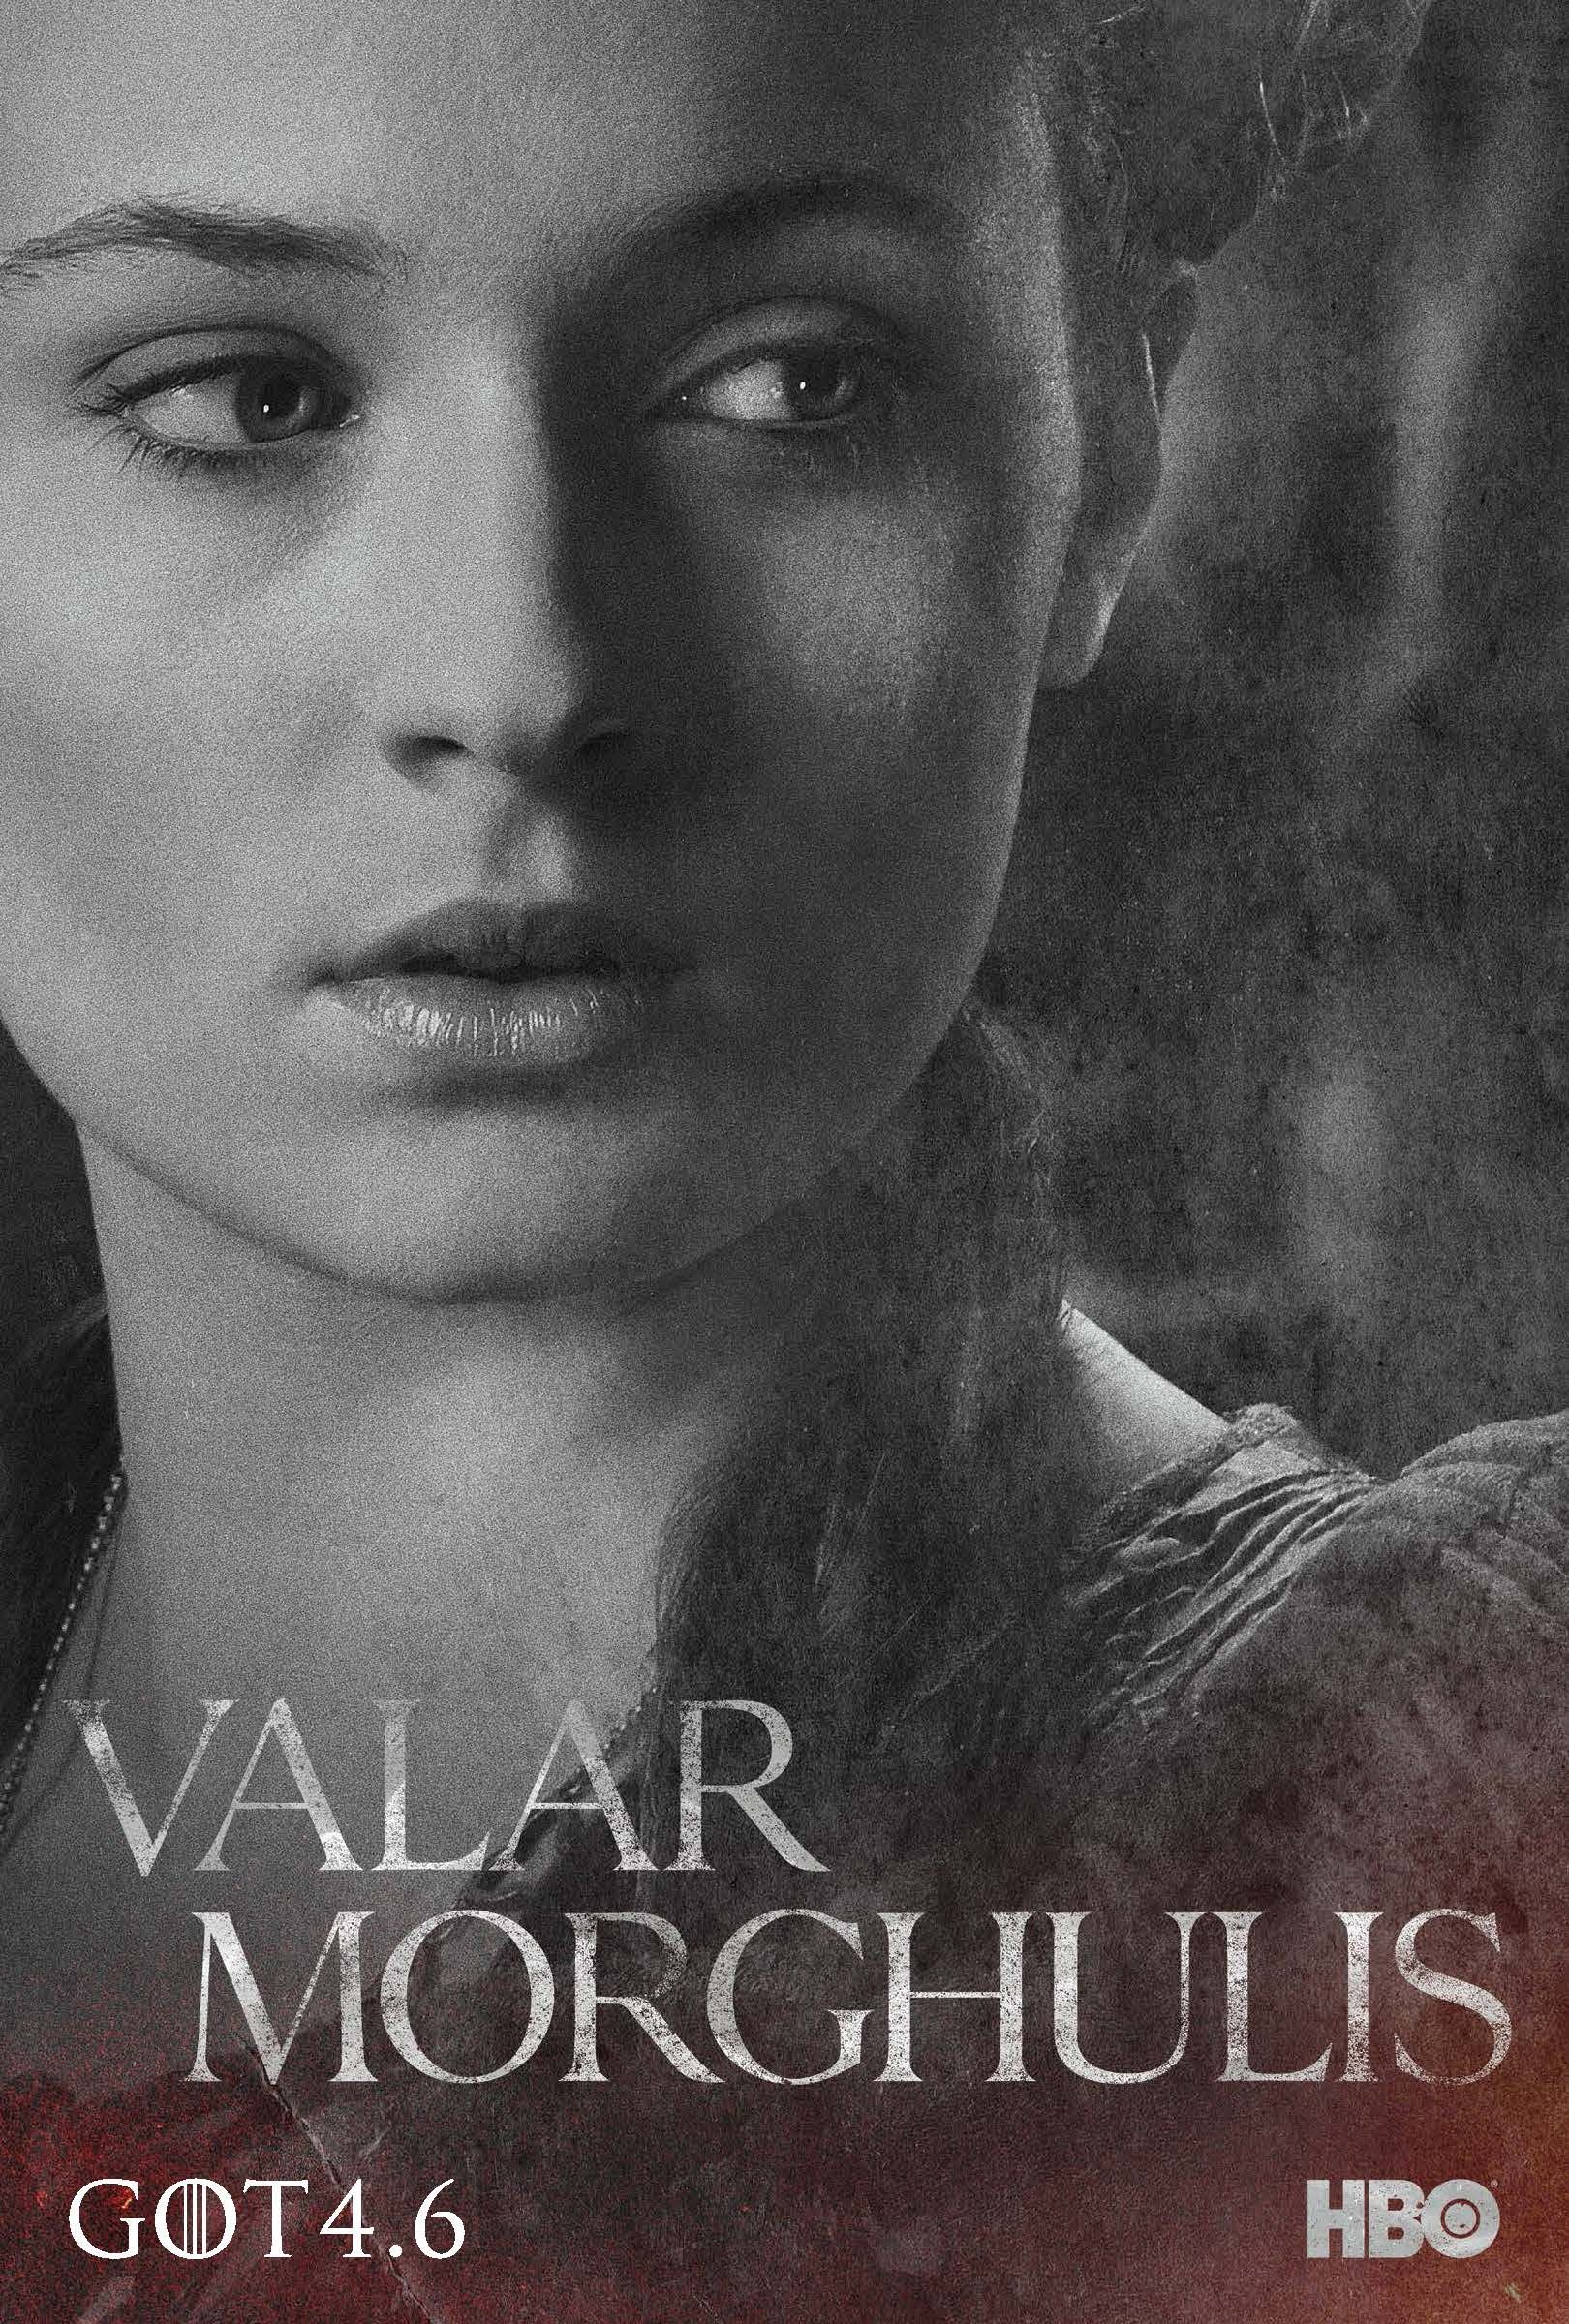 See New Character Posters and Season 4 Teasers | Valar ...